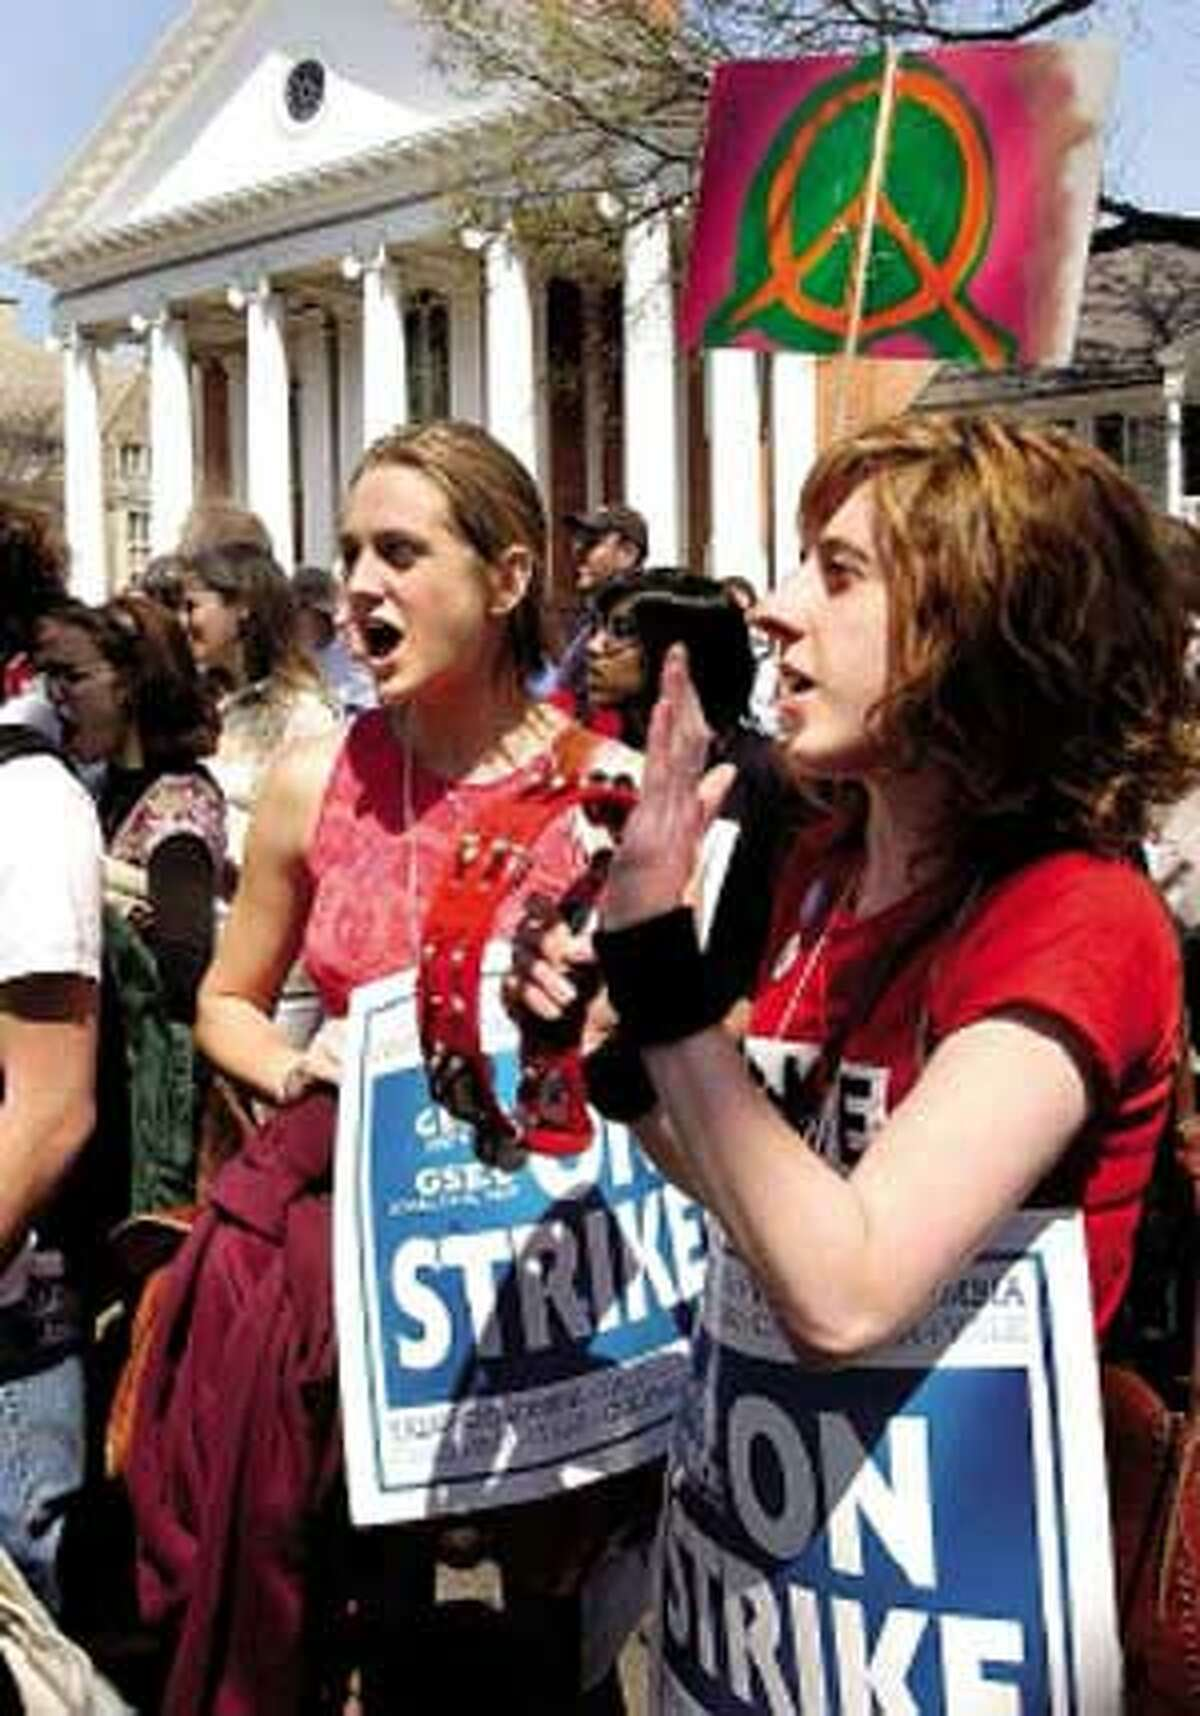 Yale graduate students Julia Irwin and Kirsten Weld take part in a union rally in New Haven.